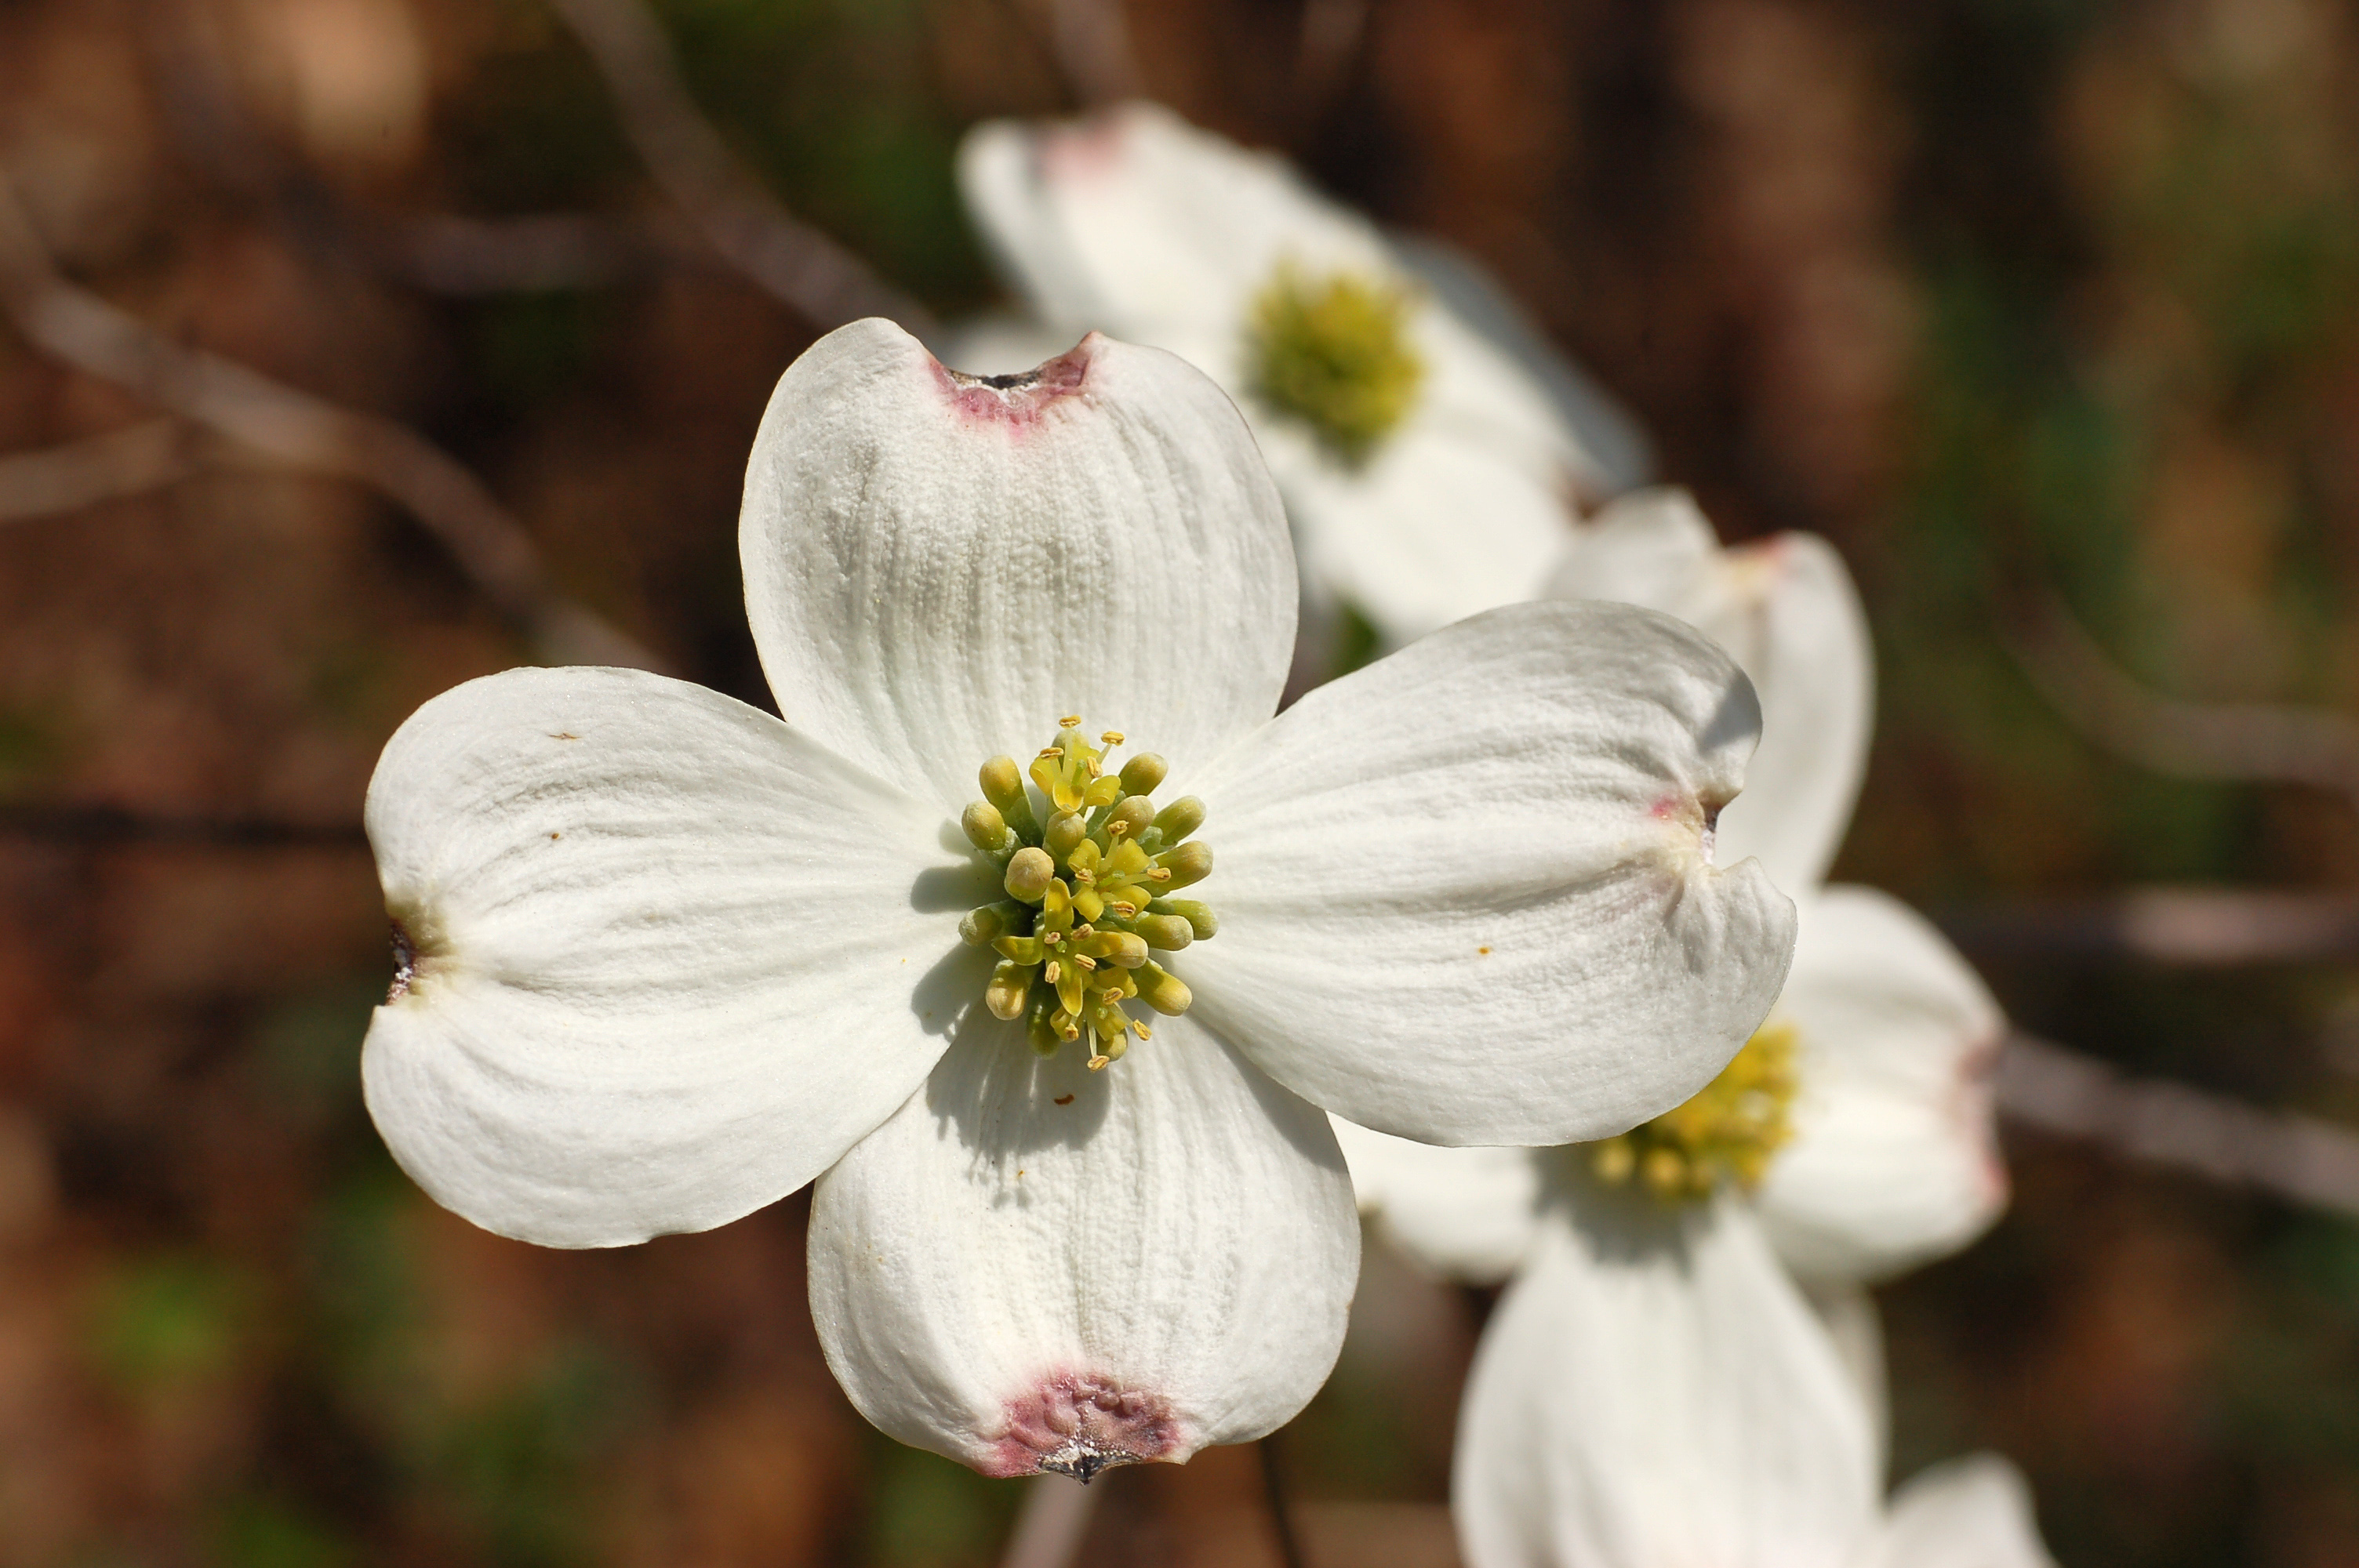 File Flowering Dogwood Cornus florida Yellow Flowers 3008px JPG Wikimedia C